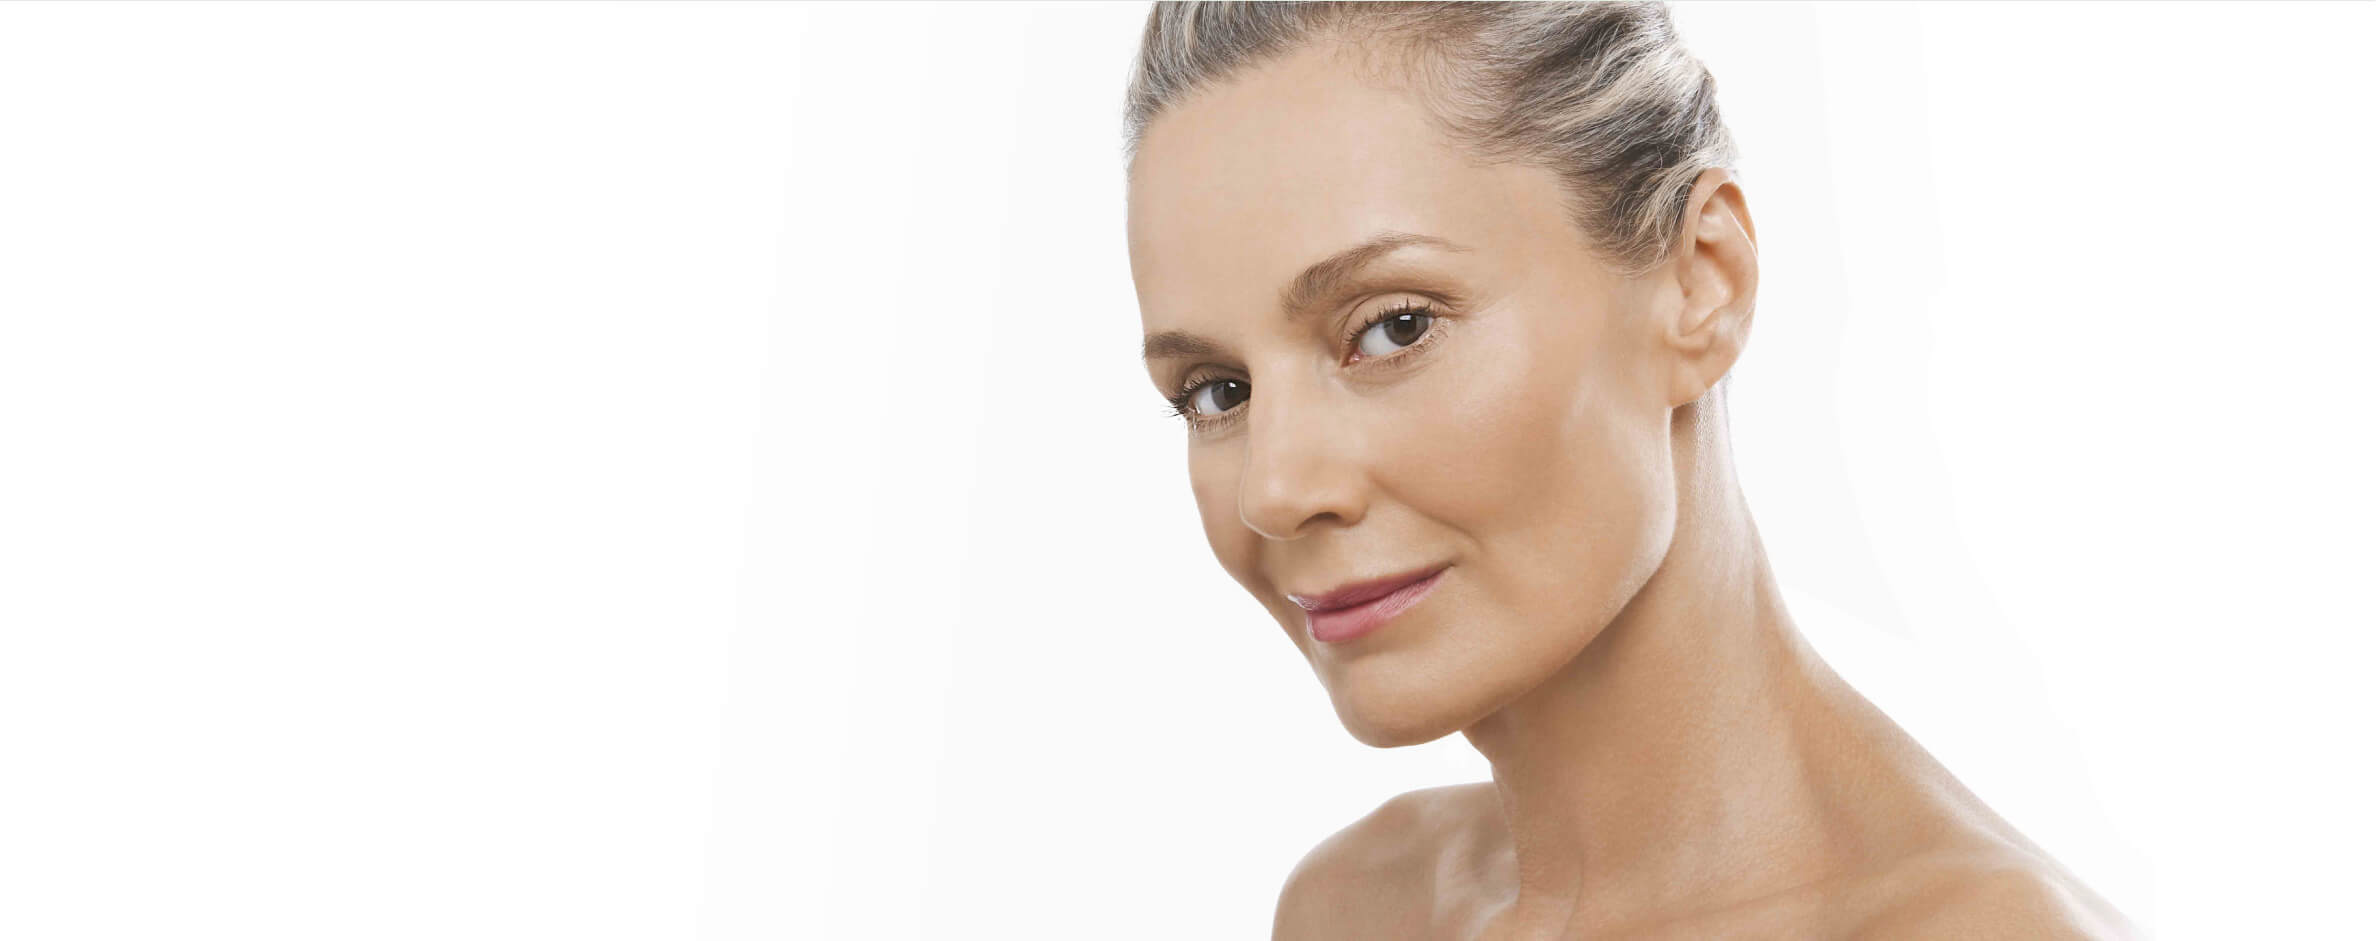 Age gracefully with dermal fillers in Troy, New York at The Artistry of Face